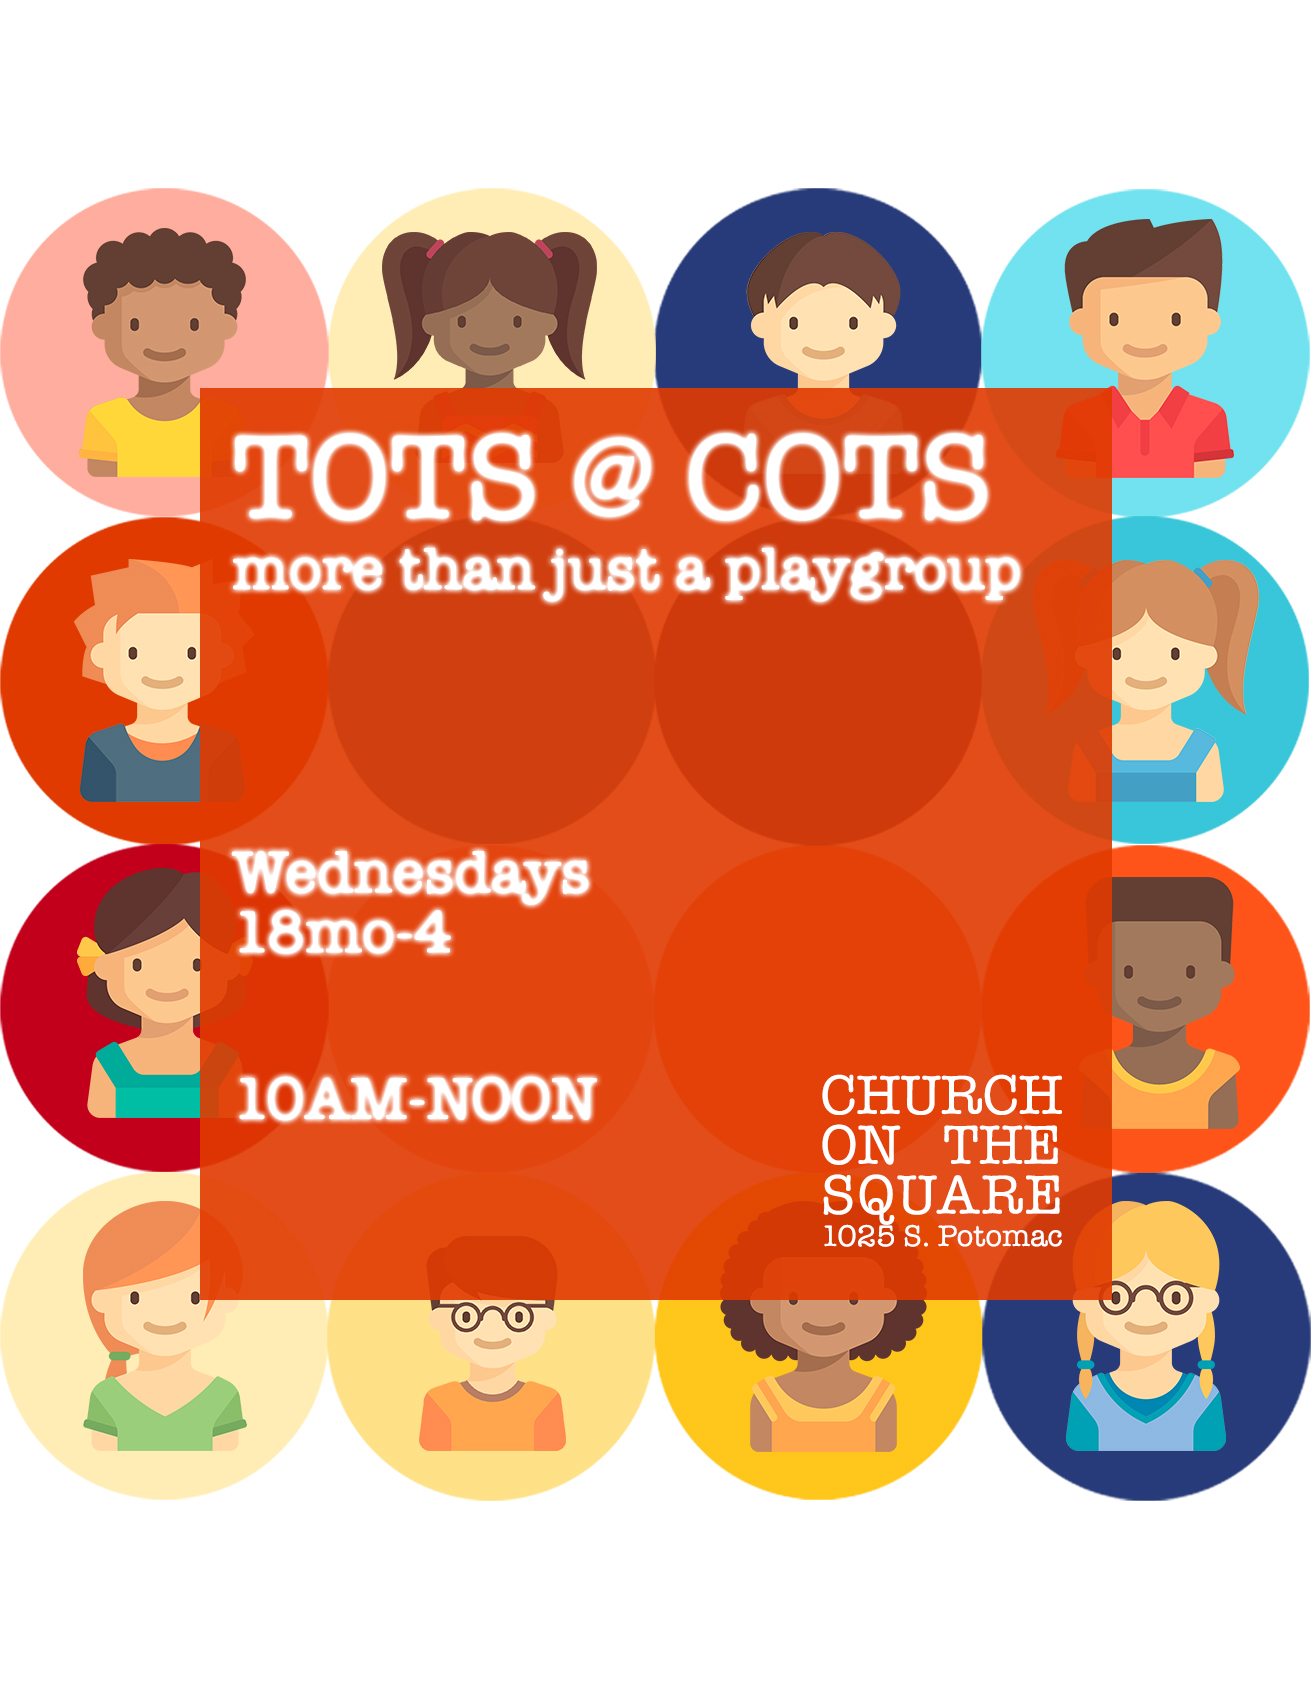 TOTS at COTS - only Wednesdays